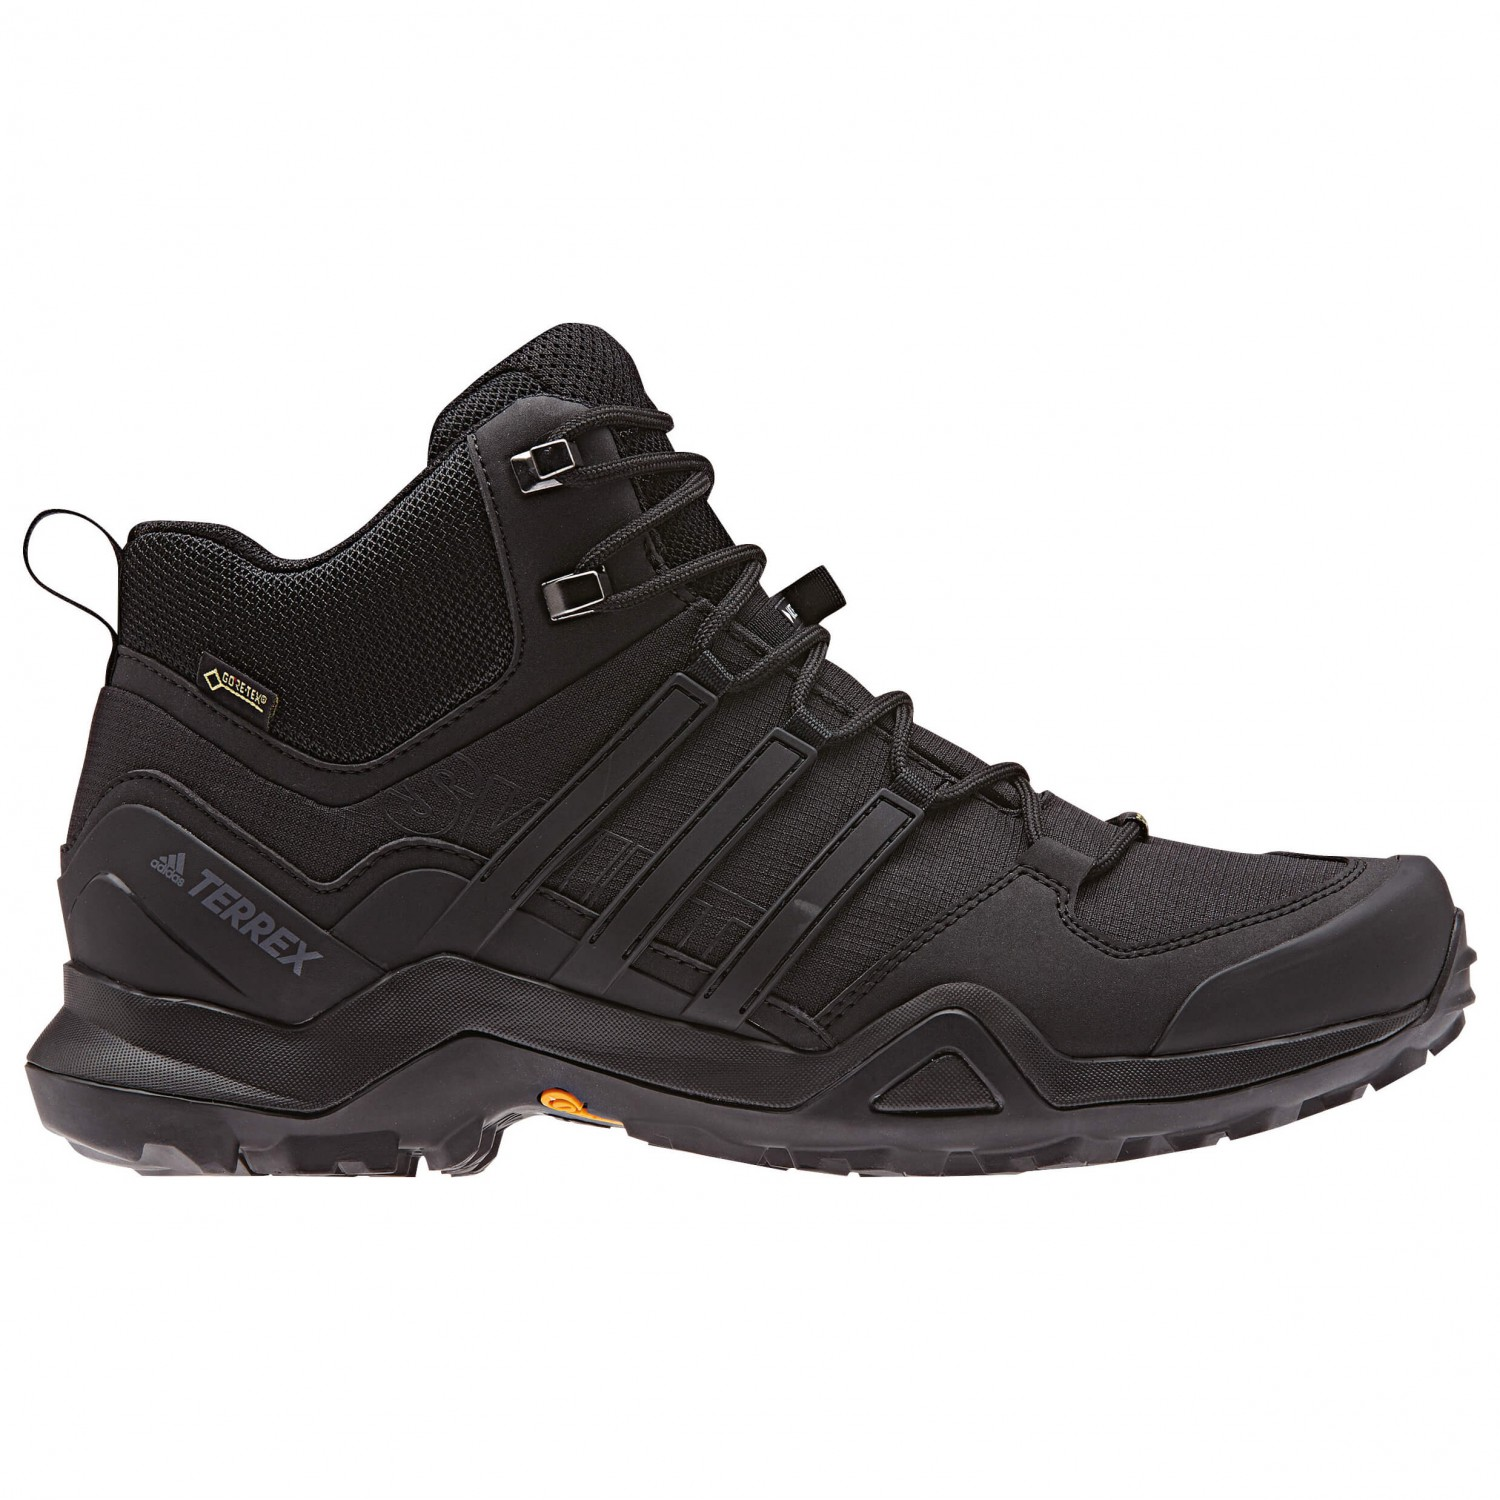 sports shoes 74450 dd9c4 adidas - Terrex Swift R2 Mid GTX - Walking boots ...